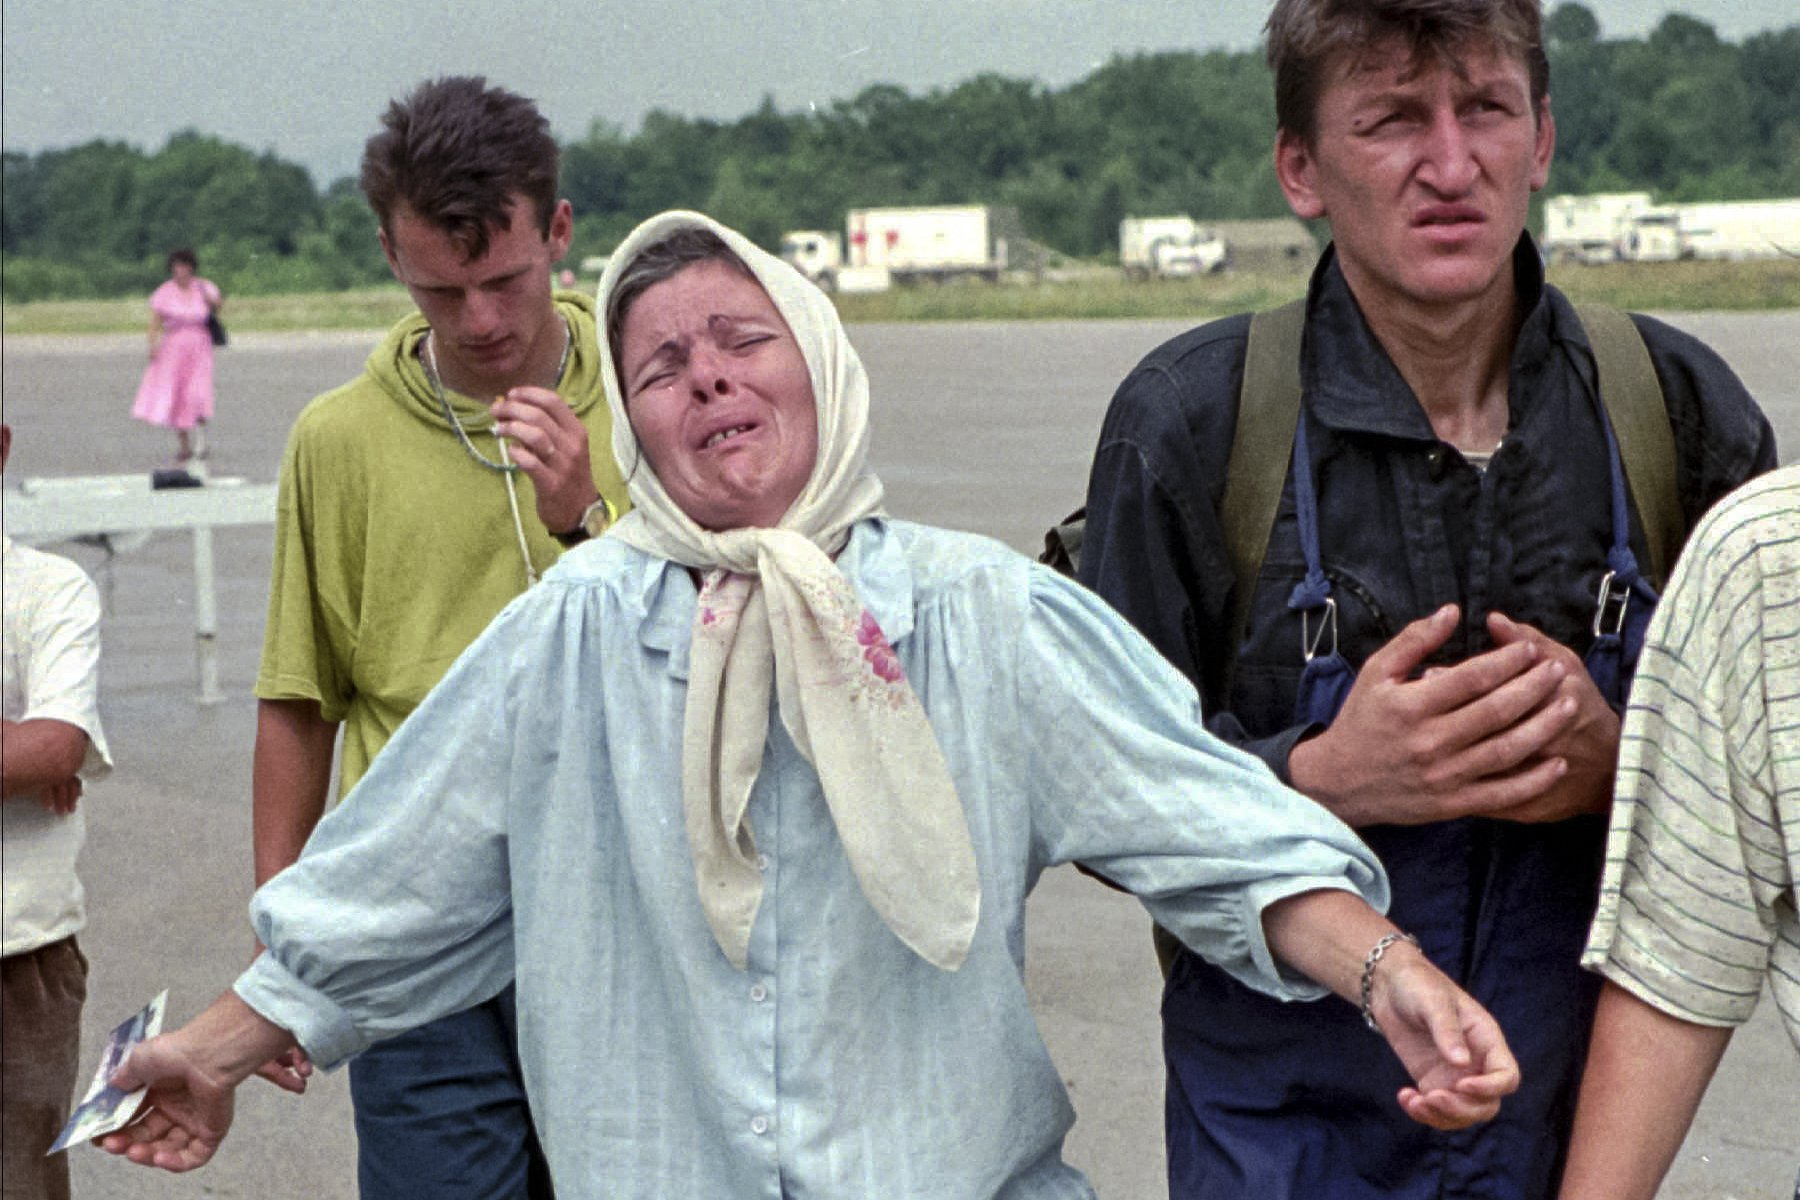 FILE- In this July 17, 1995, file picture, a Bosnian woman reacts after learning from Muslim men who arrived in Tuzla that her husband has been killed by Bosnian Serbs who overran the UN declared safe haven of Srebrenica.  Survivors of the genocide in the eastern Bosnian town of Srebrenica, mainly women, will on Saturday July 11, 2020, commemorate the 25th anniversary of the slaughter of their fathers and brothers, husbands and sons.  At least 8,000 mostly Muslim men and boys were chased through woods in and around Srebrenica by Serb troops in what is considered the worst carnage of civilians in Europe since World War II. The slaughter was also the only atrocity of the brutal war that has been confirmed an act of genocide.(AP Photo/Michel Euler, File)